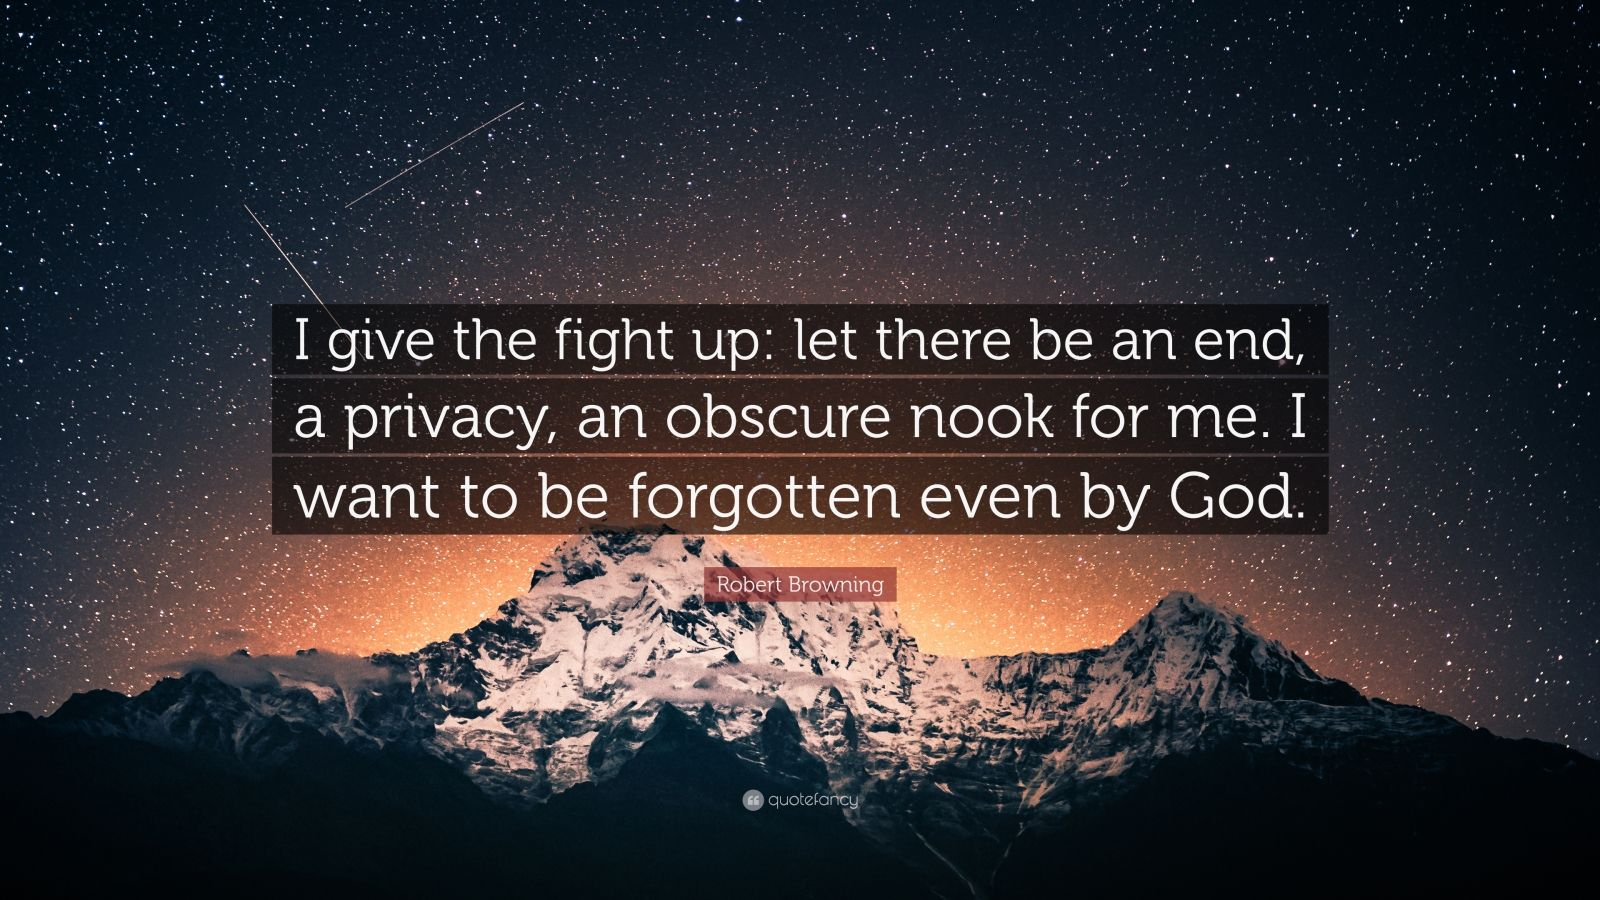 """Robert Browning Quote: """"I give the fight up: let there be an end, a privacy, an obscure nook for me. I want to be forgotten even by God."""""""